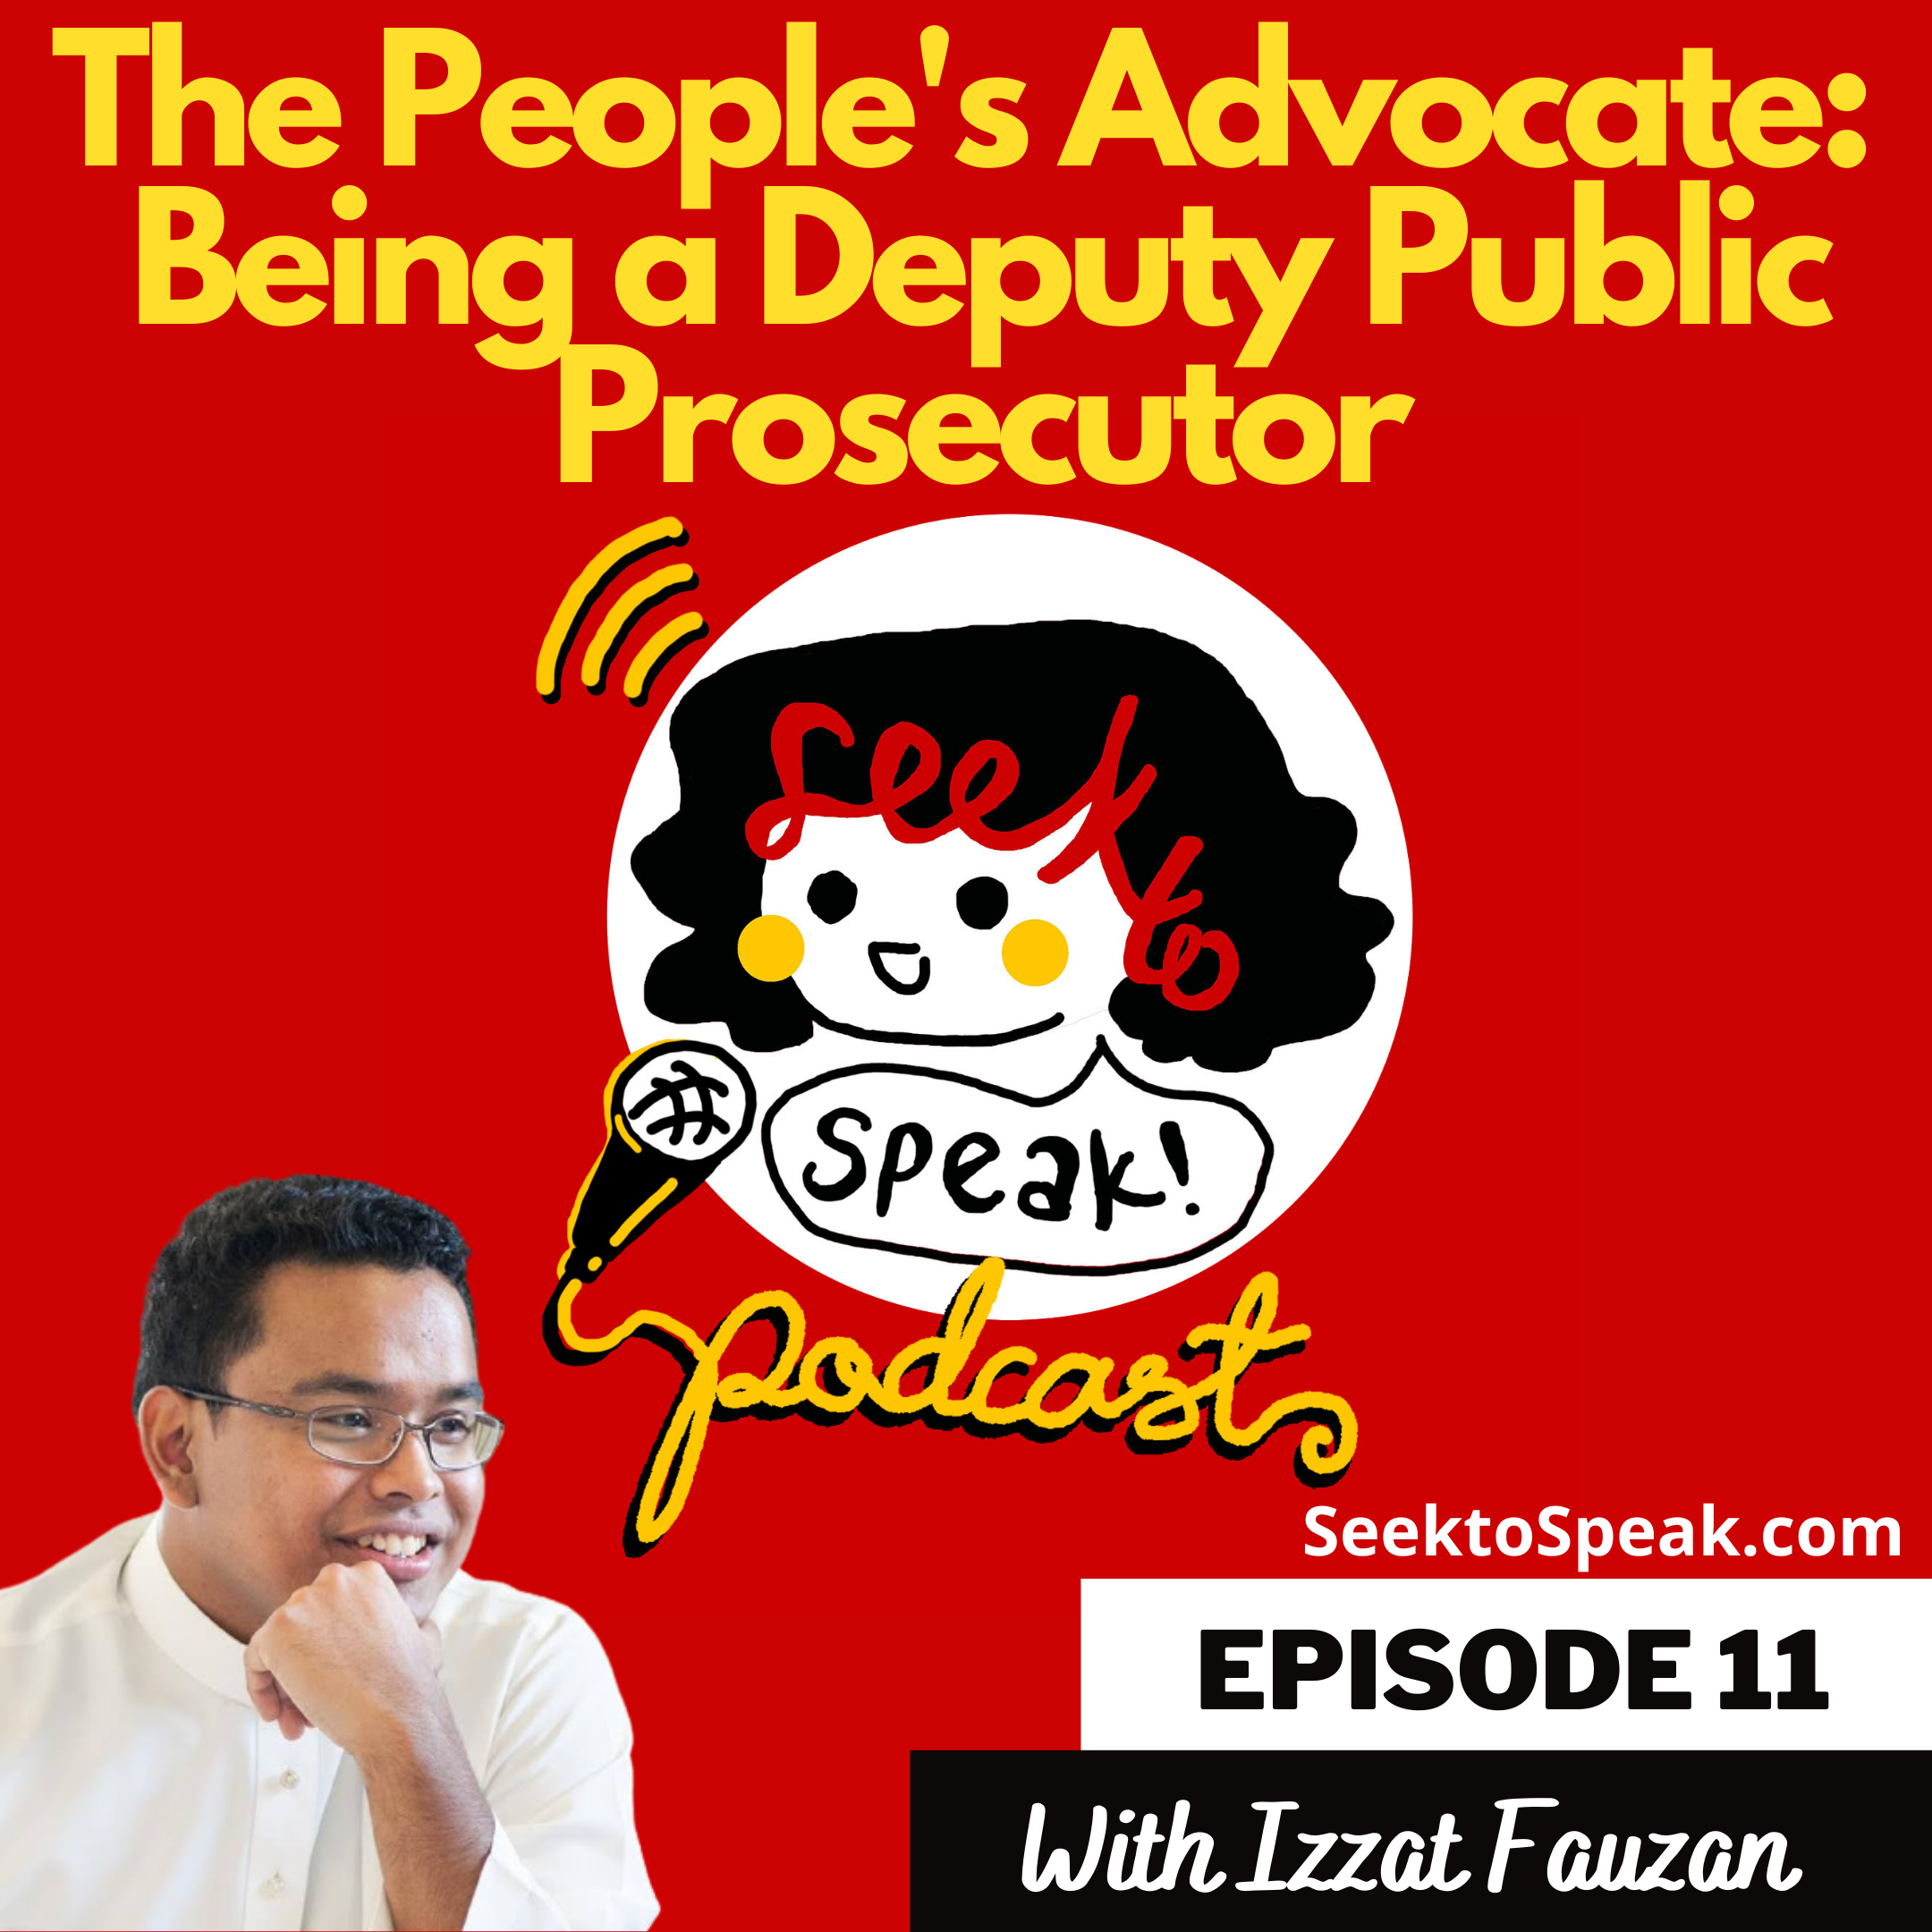 Podcast Episode 11 –   The People's Advocate: Being a Deputy Public Prosecutor with Izzat Fauzan!